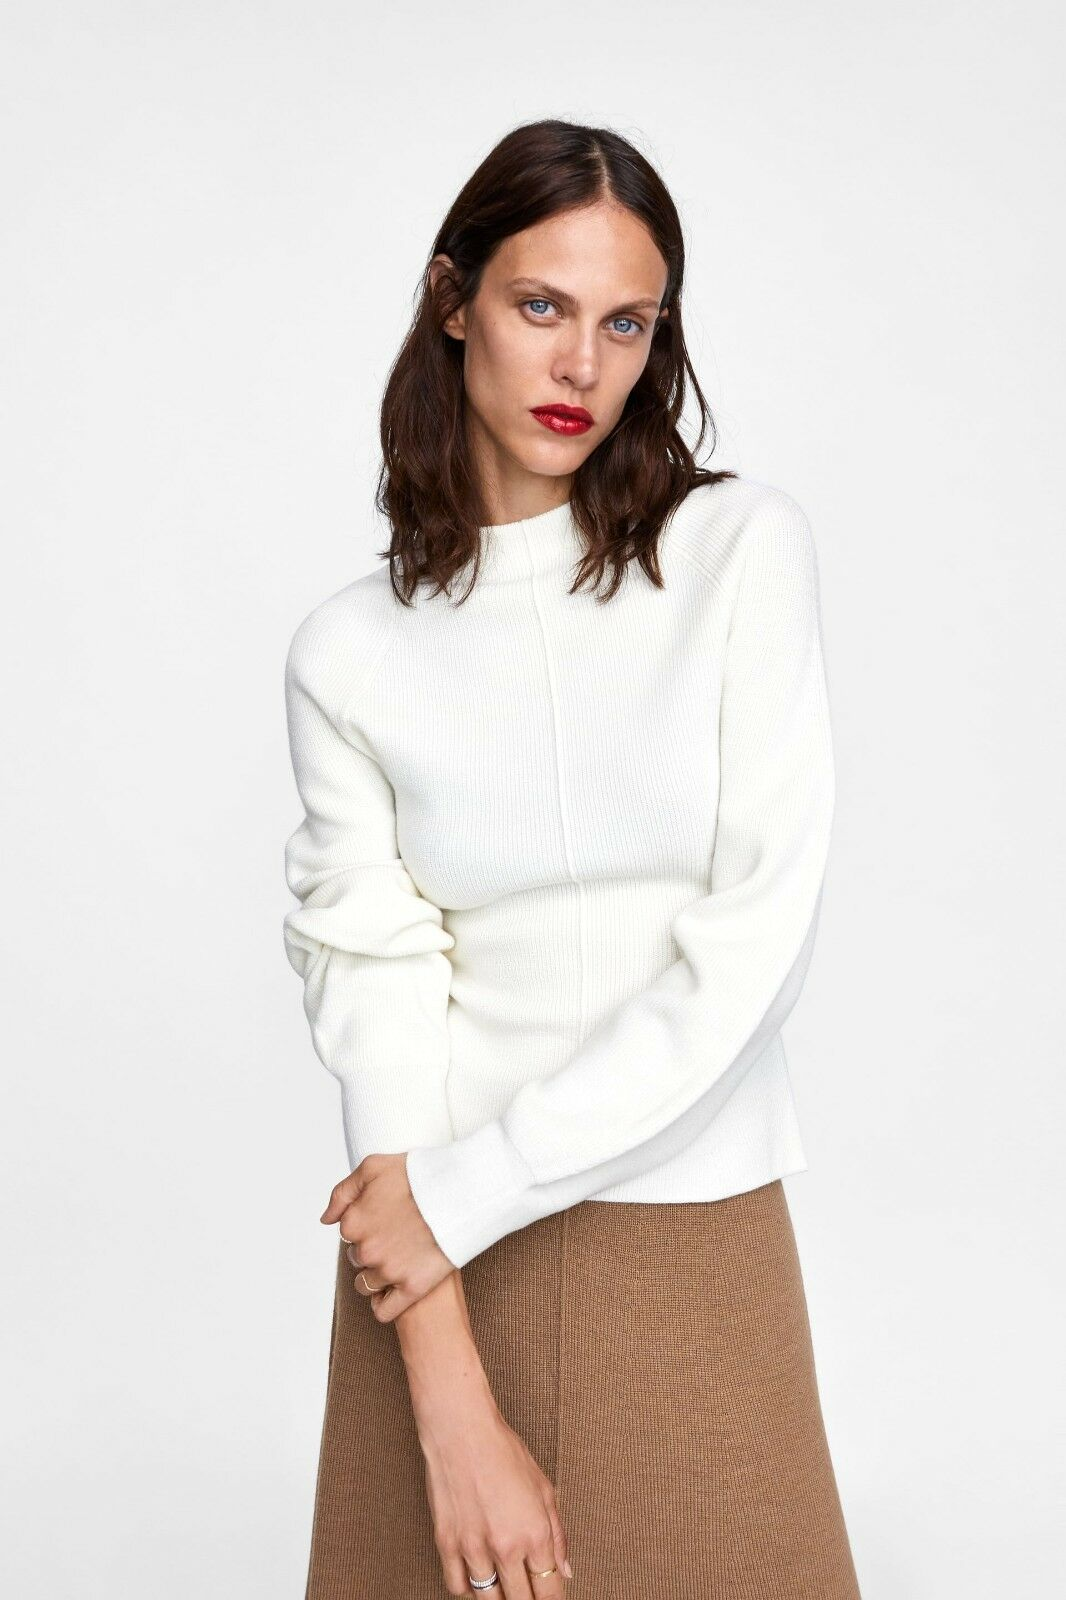 ZARA WOMAN ECRU WHITE MINIMAL COLLECTION PUFF SLEEVE SWEATER M REF. 5755 107